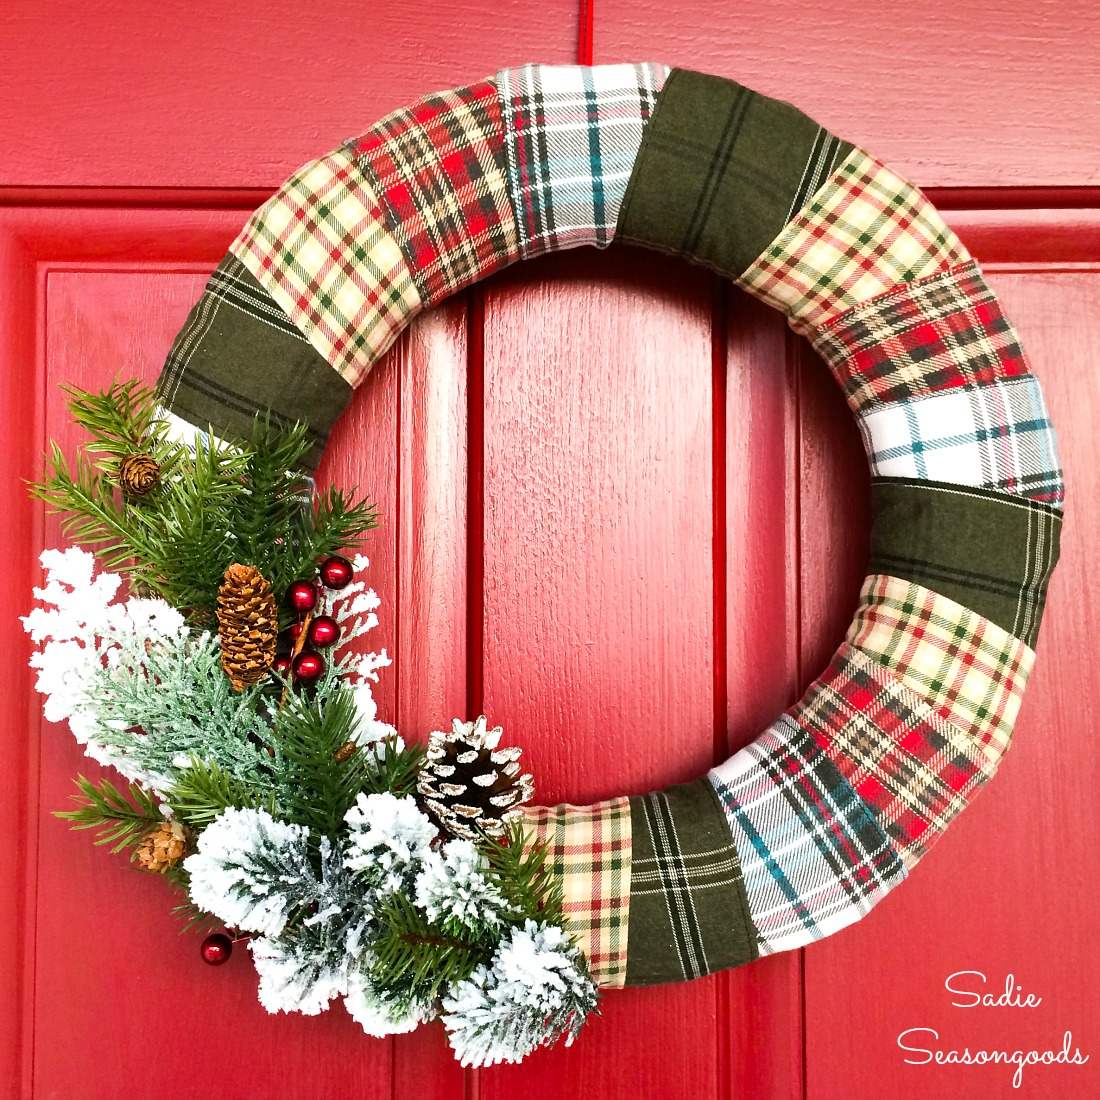 Rustic Christmas Wreath for a Cozy Christmas